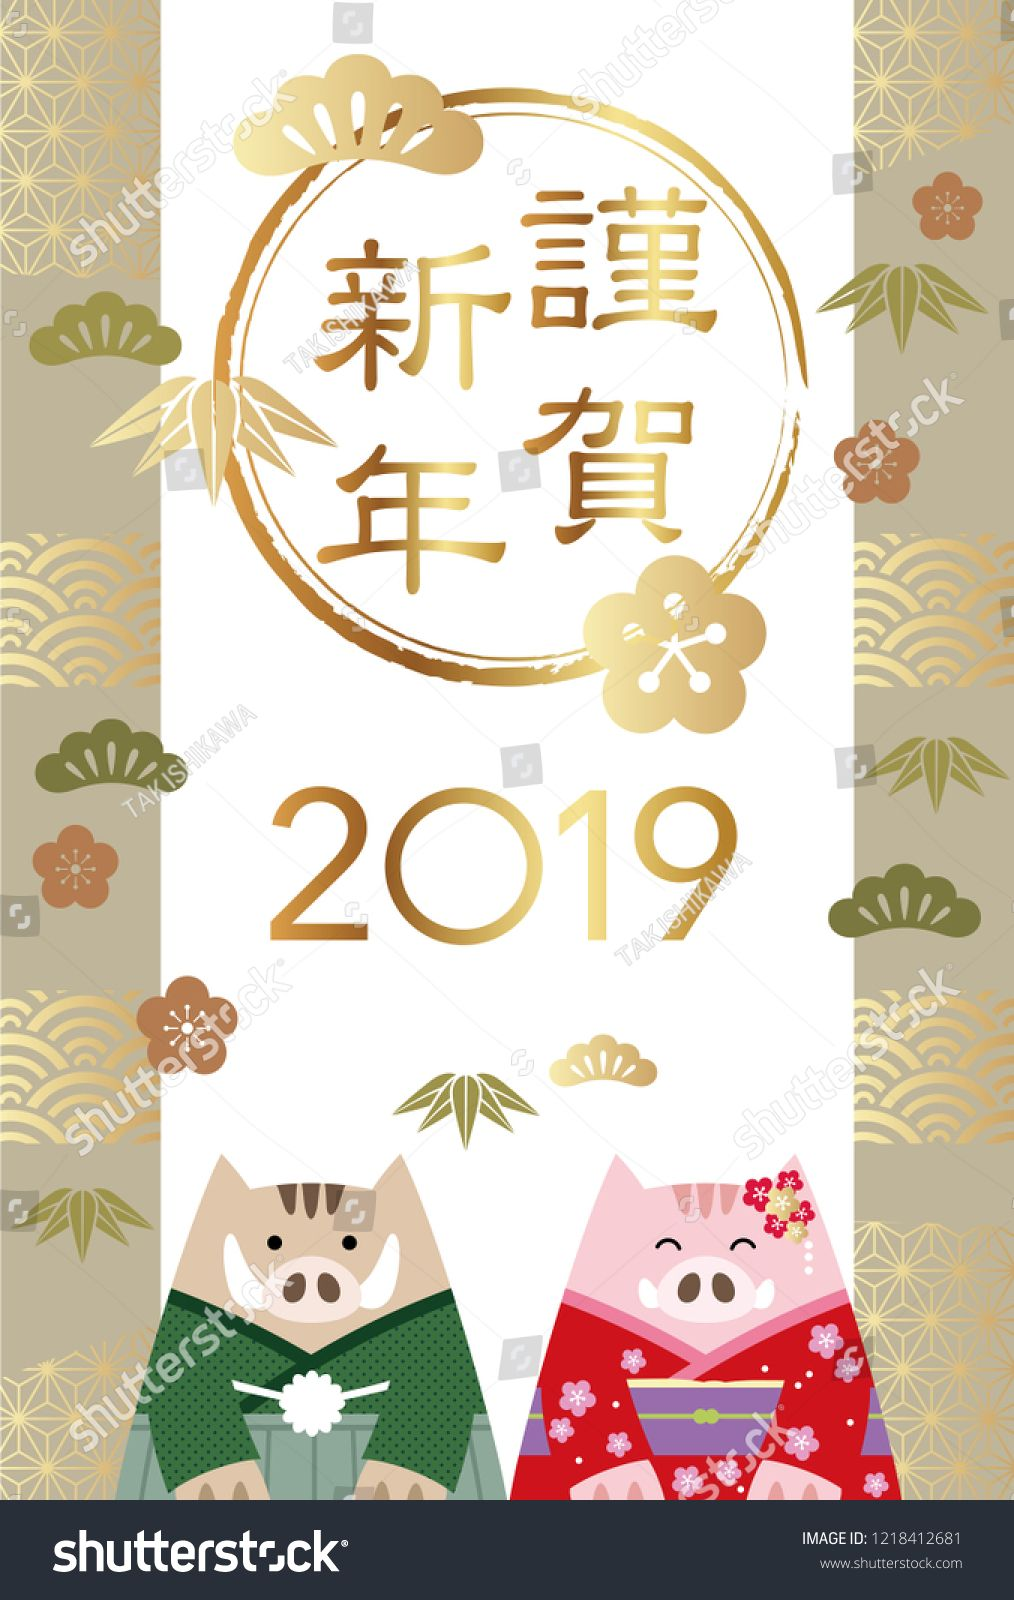 2019 Year Of The Wild Boar New Year S Card Template Vector Illustration Text Translation Happy New Business Card Template Word Year Of The Boar Cards